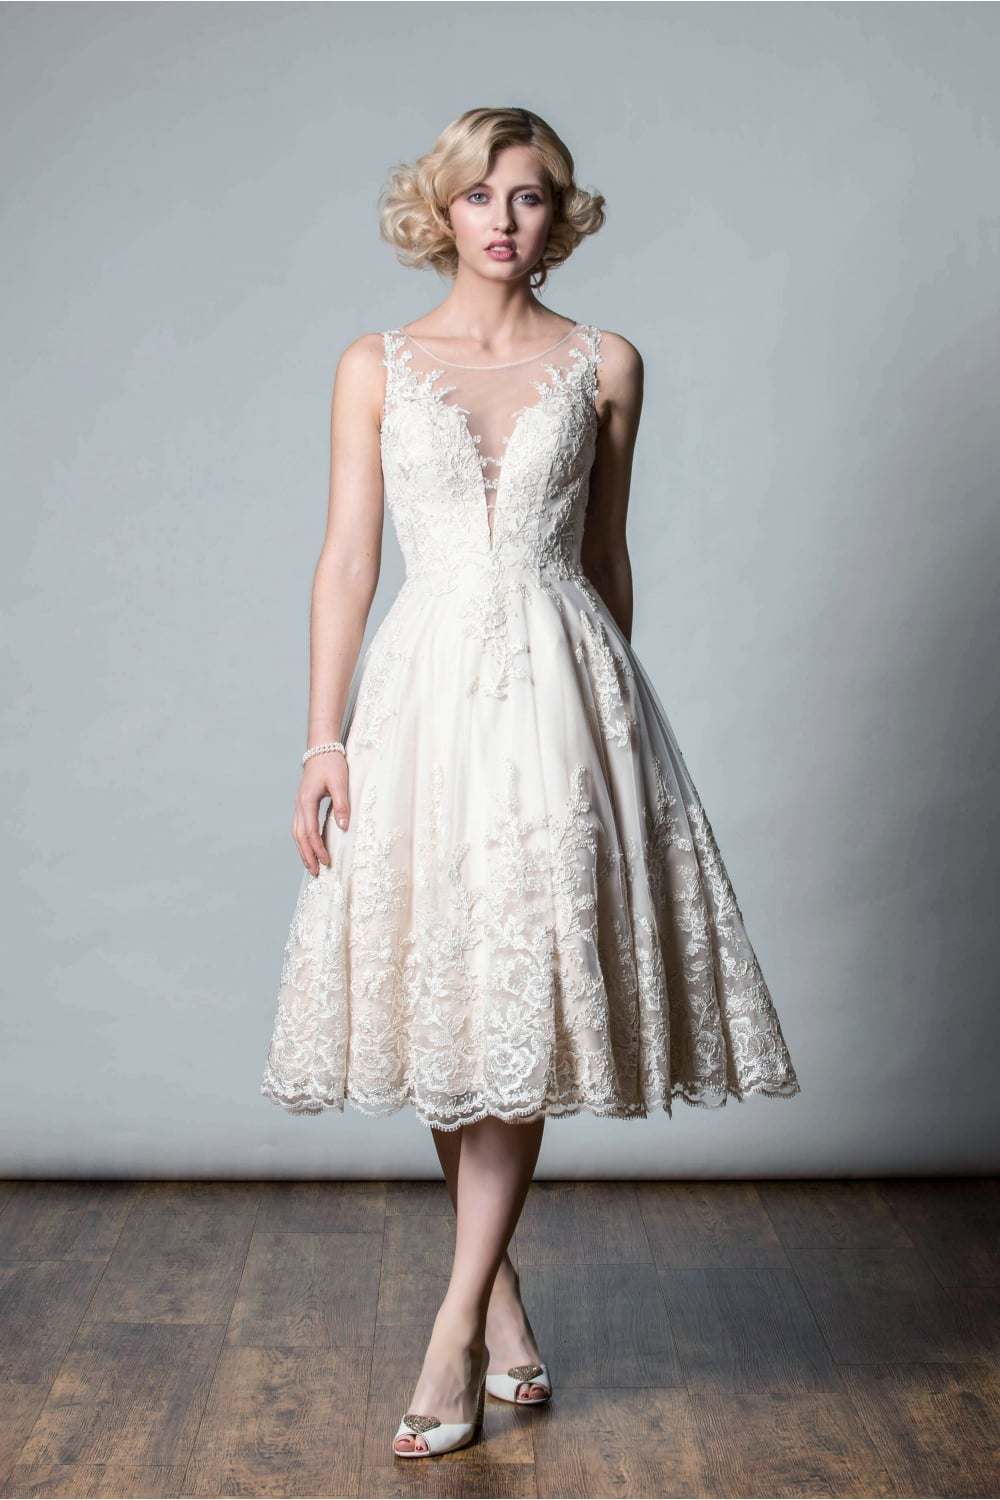 Champagne Tea Length Wedding Dresses,Blue Lace Short Wedding Dresses,Champagne Lace Short Wedding Dress , Mid Length Lace Champagne Dresses,Mid Length Lace Champagne Dresses,Lacy Short Wedding Dresses,Short Champagne Wedding Dress,Short Champagne Lace Dress,Short Wedding Dresses with Lace,Short Lace Wedding Gowns, Short Wedding Dress Lace,Short Wedding Dress Lace,Lace Short Wedding Dress,